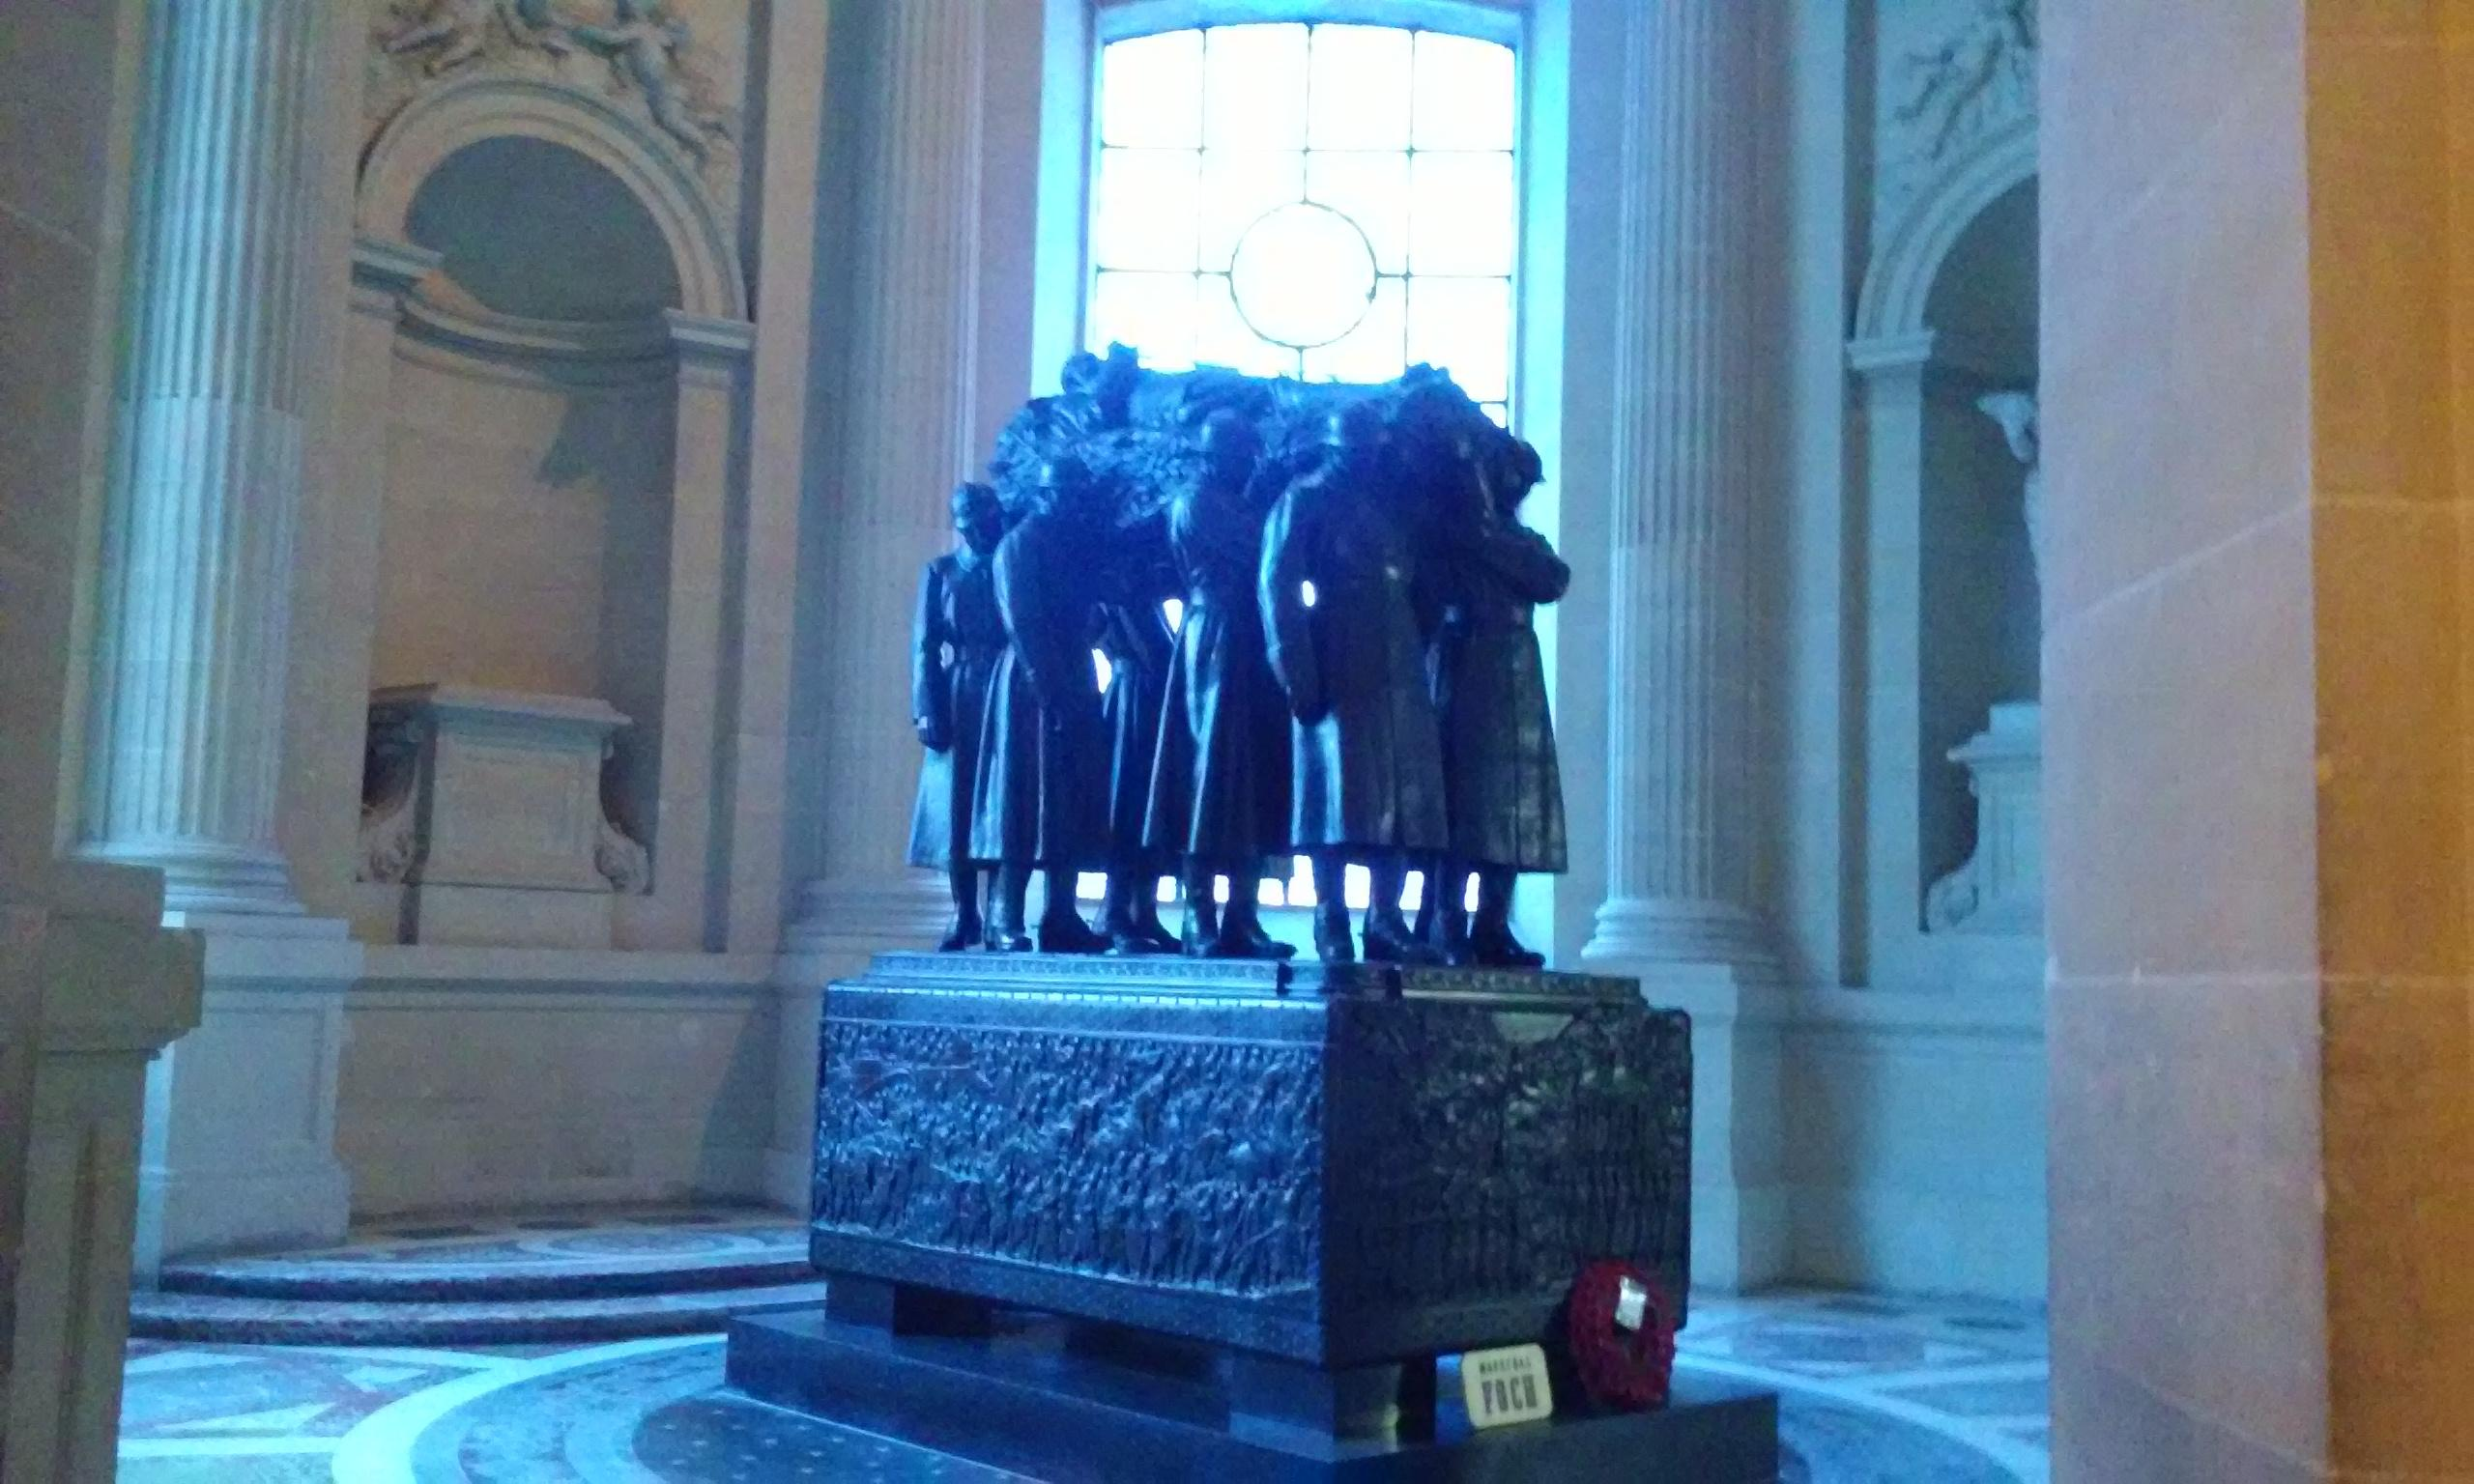 Napoleon's Tomb. A statue of 8 men carrying a casket. Each area of Napoleon's tomb